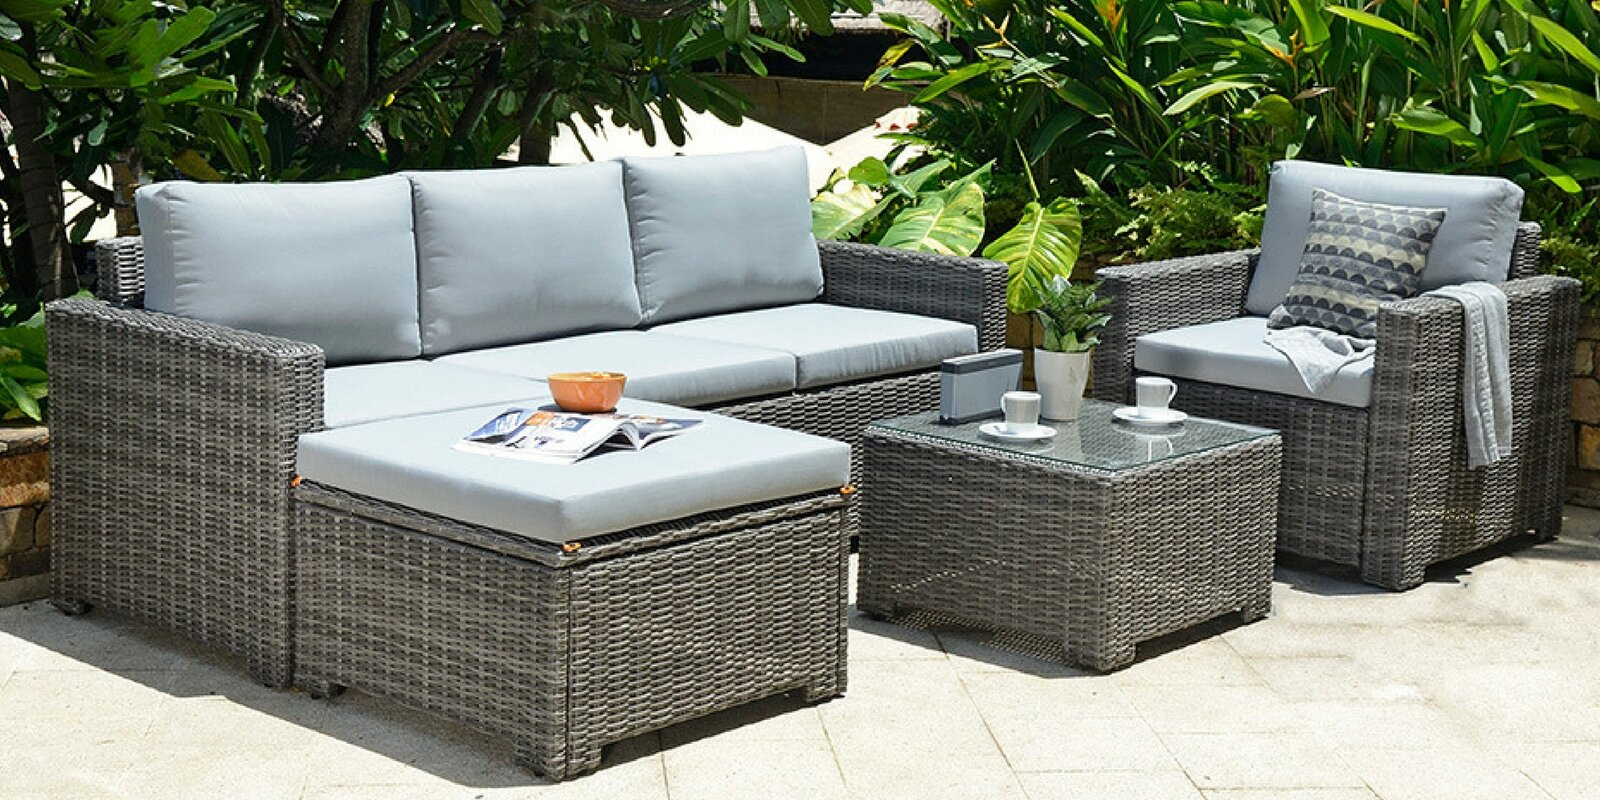 garten living 5 sitzer ecksofa set delacruz aus rattan mit polster bewertungen. Black Bedroom Furniture Sets. Home Design Ideas